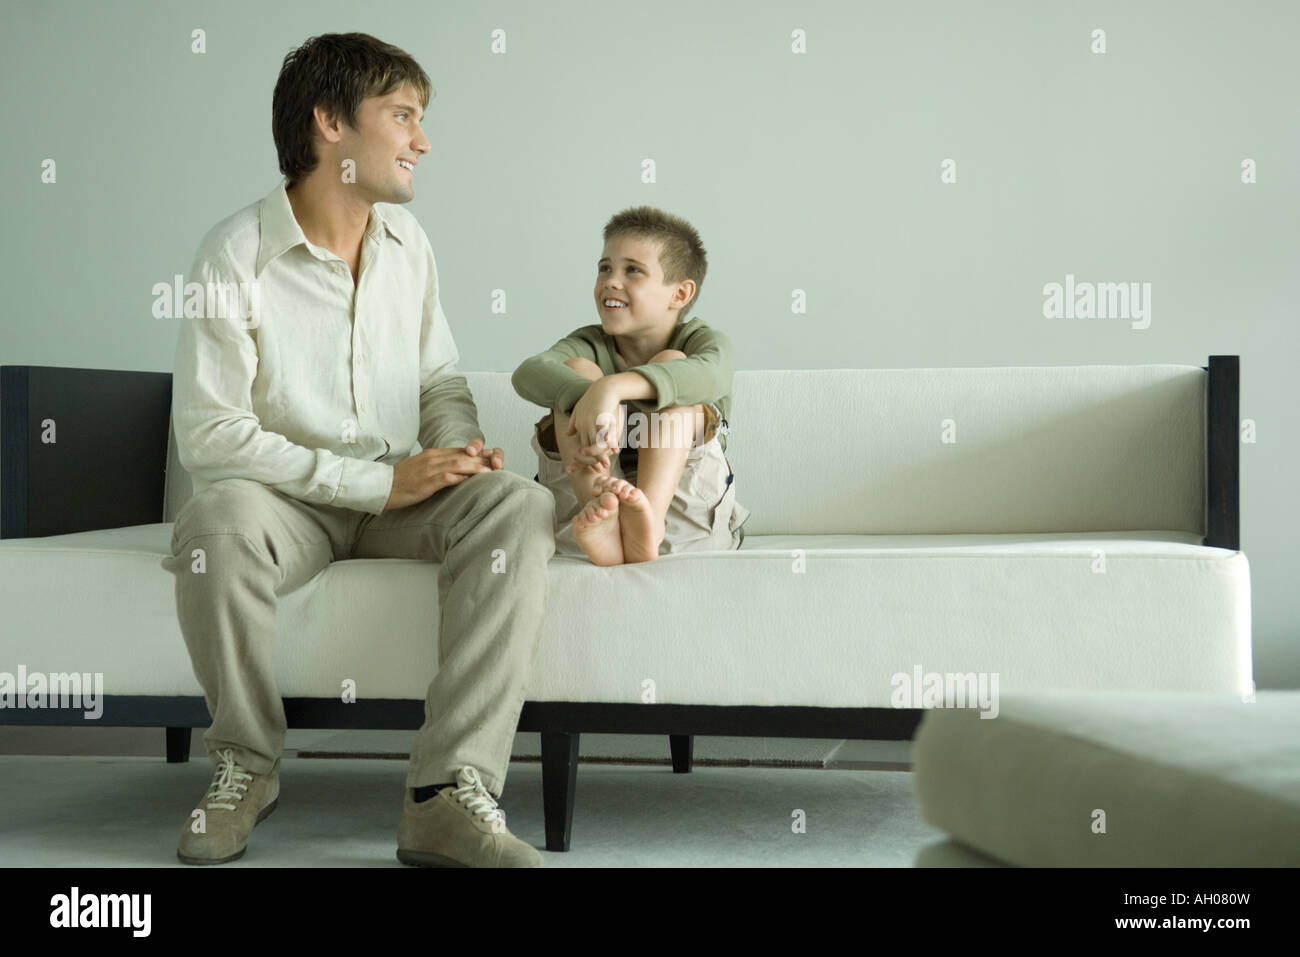 Boy and father sitting on sofa, talking - Stock Image